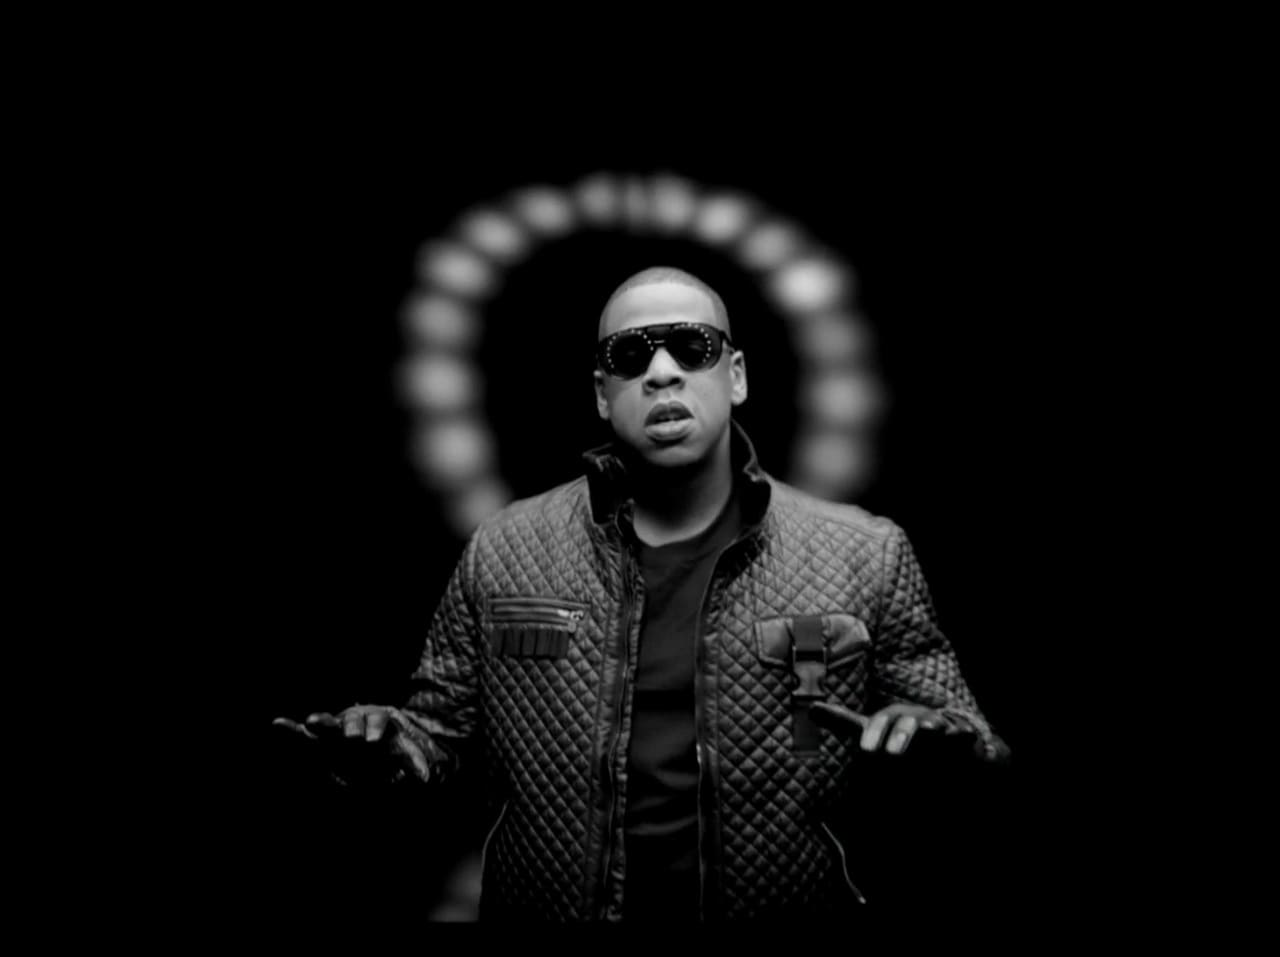 Jay-Z widescreen wallpapers